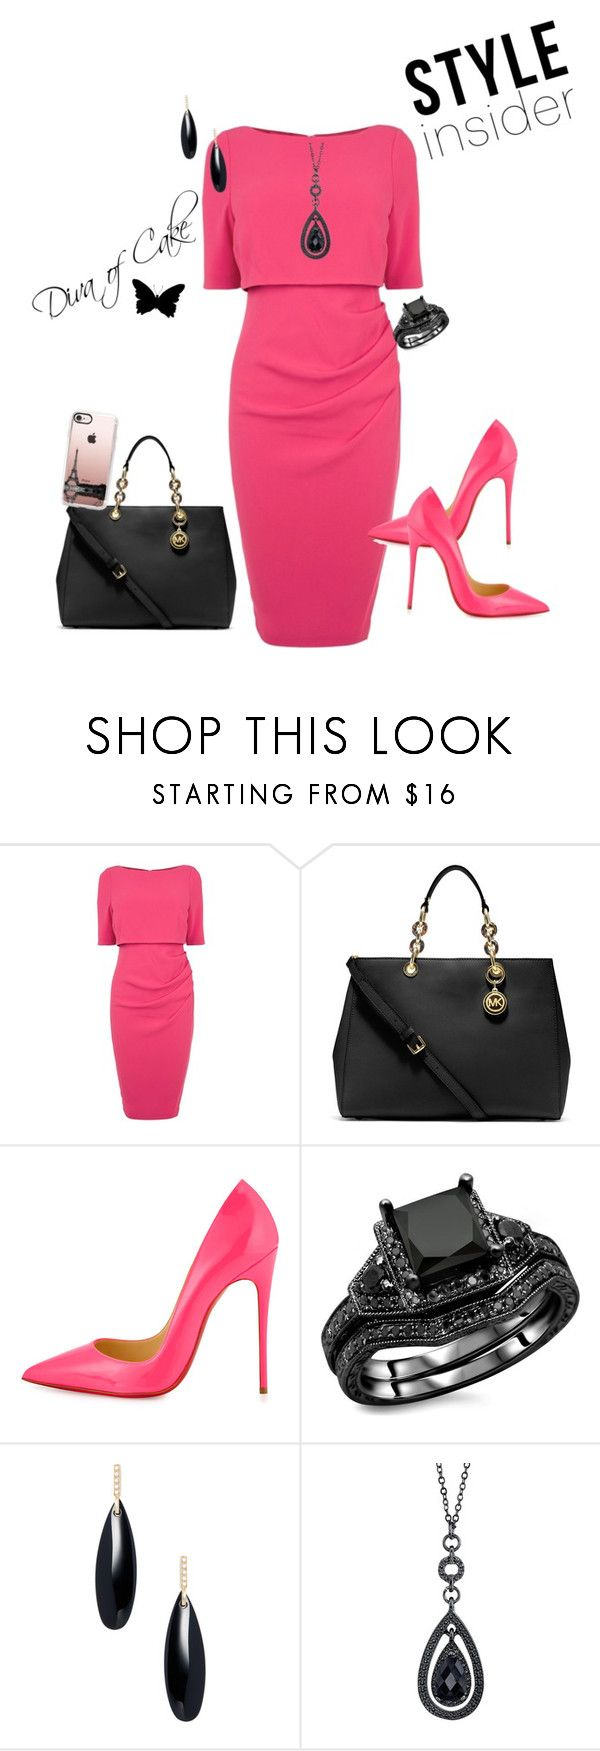 """Elegant pink and black outfit"" by Diva of Cake featuring Coast, MICHAEL Michael Kors, Christian Louboutin, Janis Savitt, 1928 and Casetify"